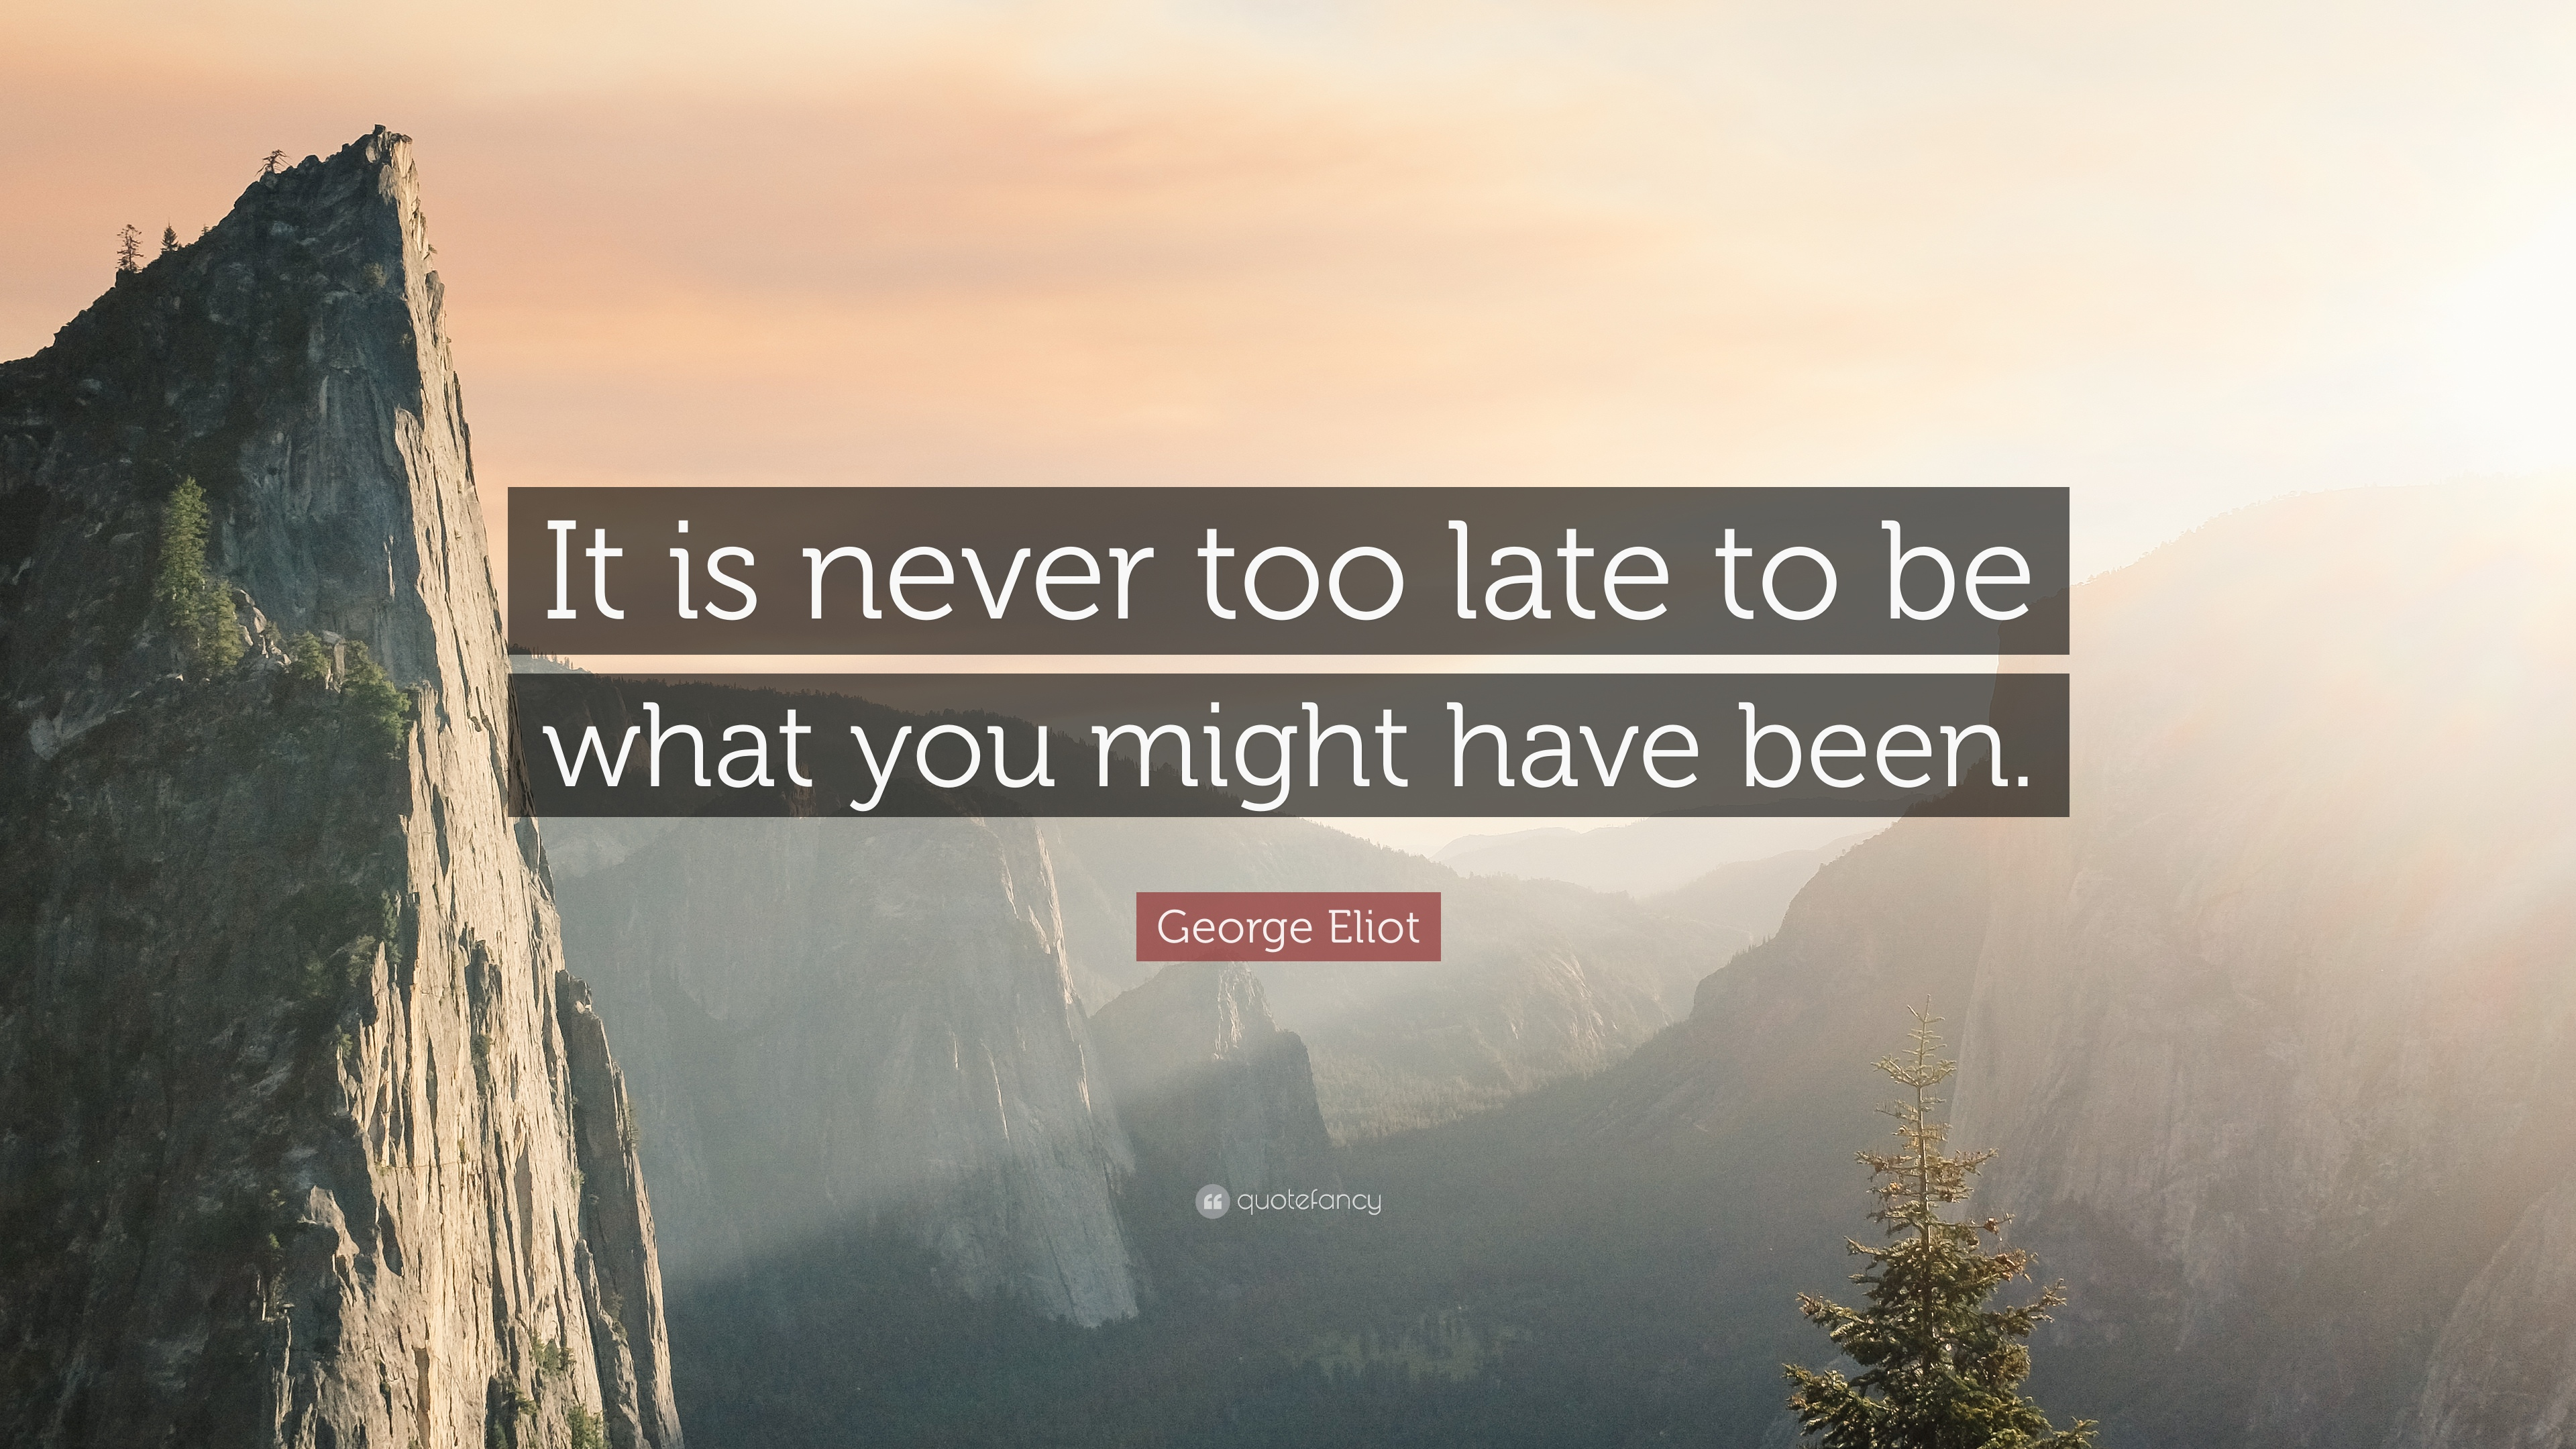 Conor Mcgregor Quote Wallpaper George Eliot Quote It Is Never Too Late To Be What You